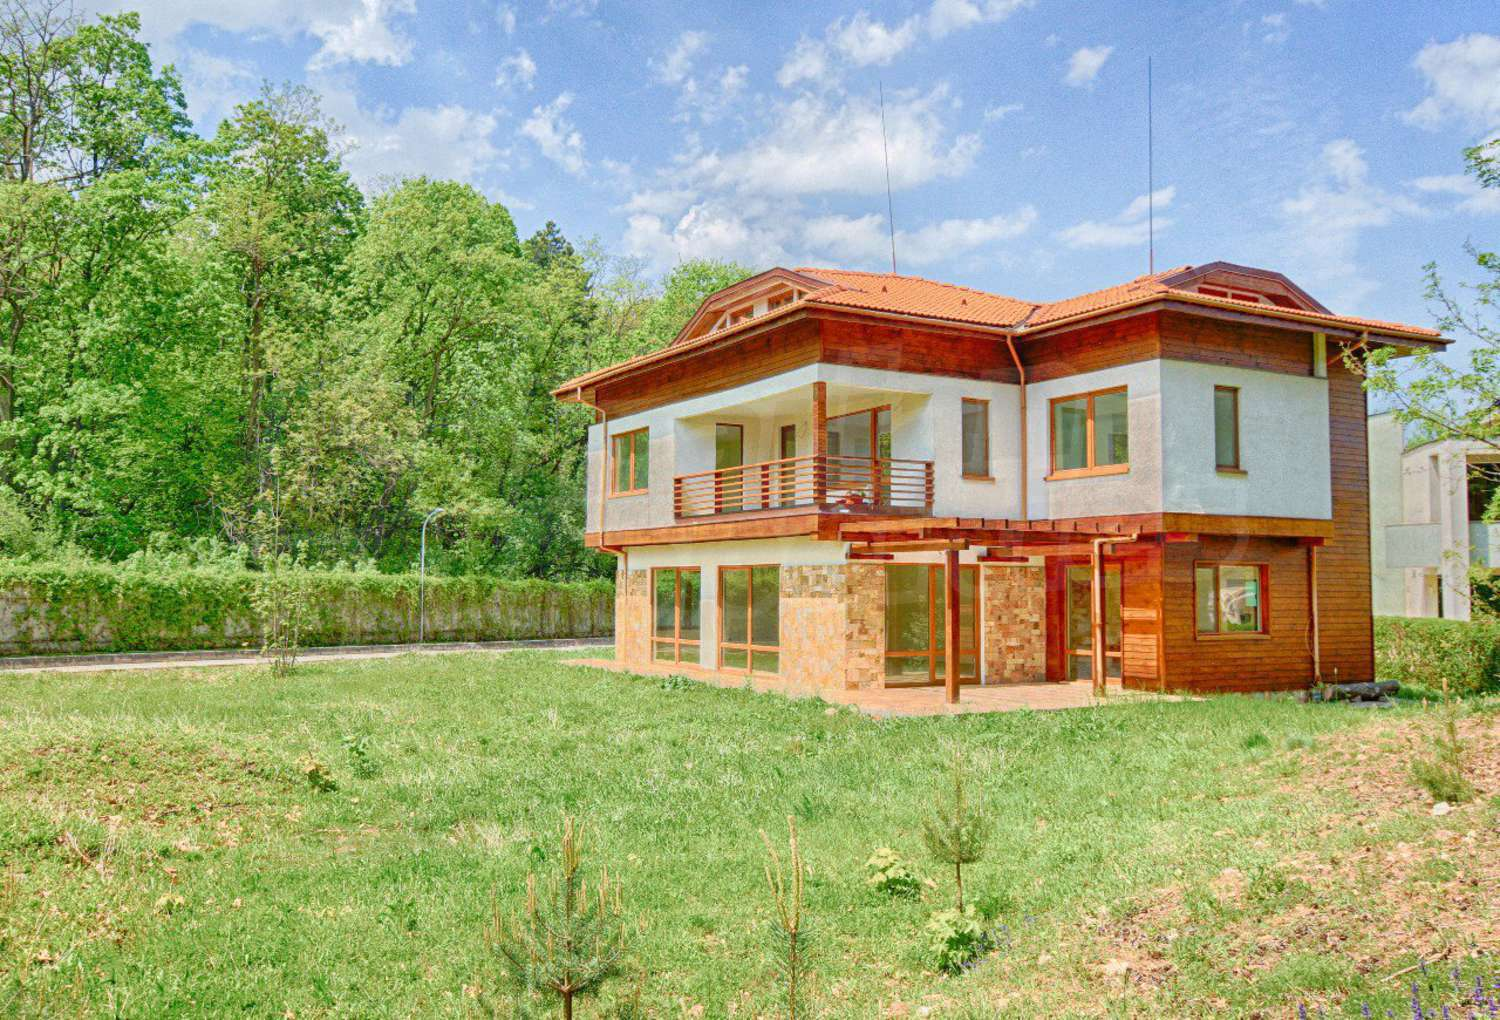 House For Sale In Sofia Village In Sofia Quartermalinova Dolina Okolovrasten Pat Bulgaria